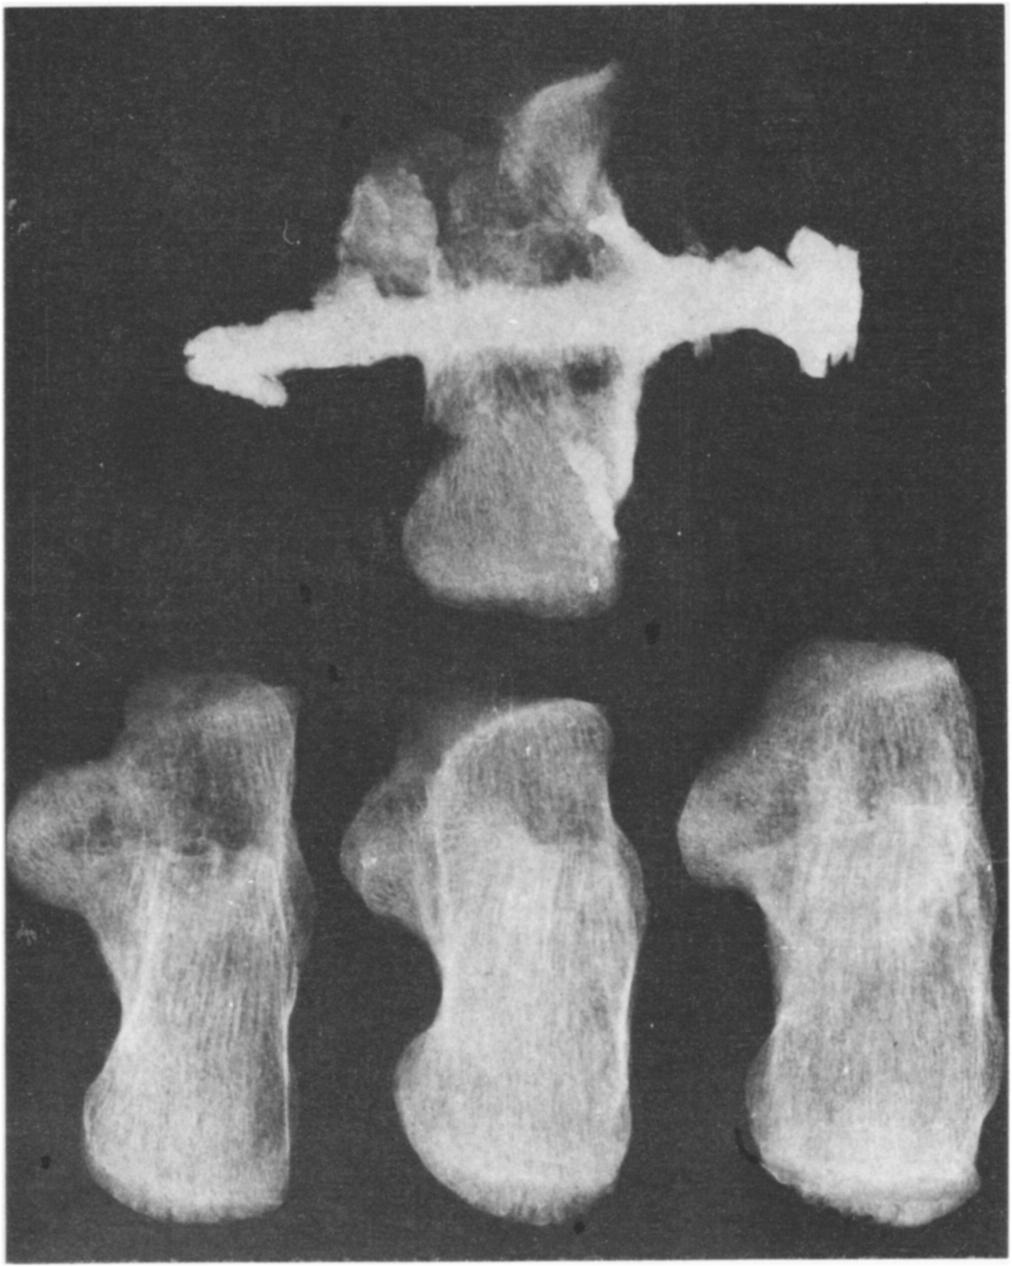 PLATE 7 : Distal bones of left tibia